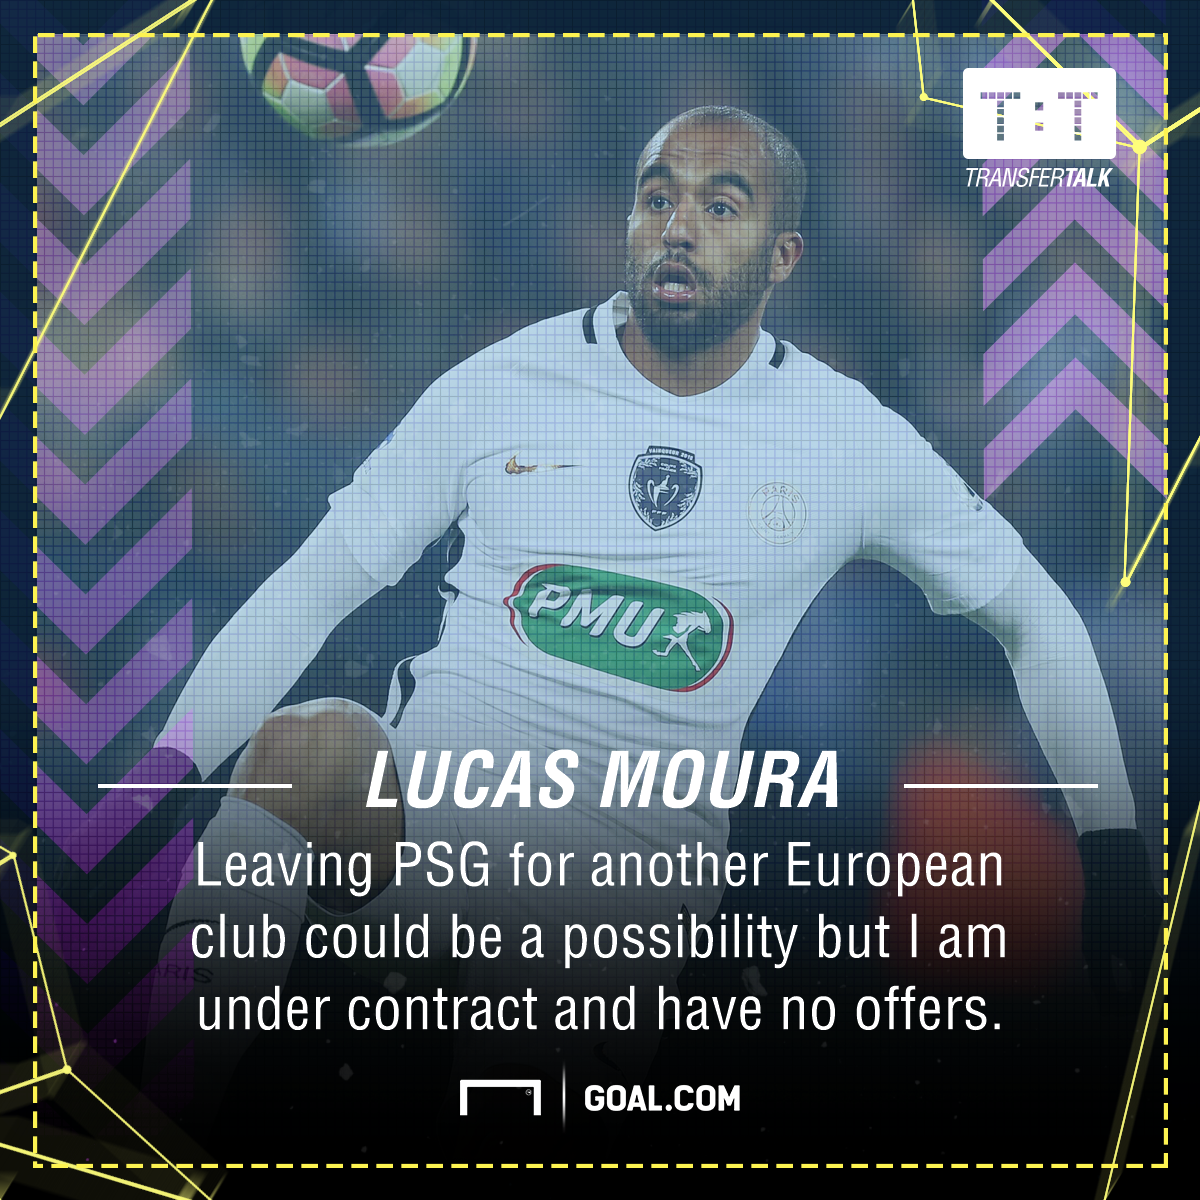 Lucas Moura To Psg Price: Transfer News: PSG Winger Lucas Moura Opens Door To